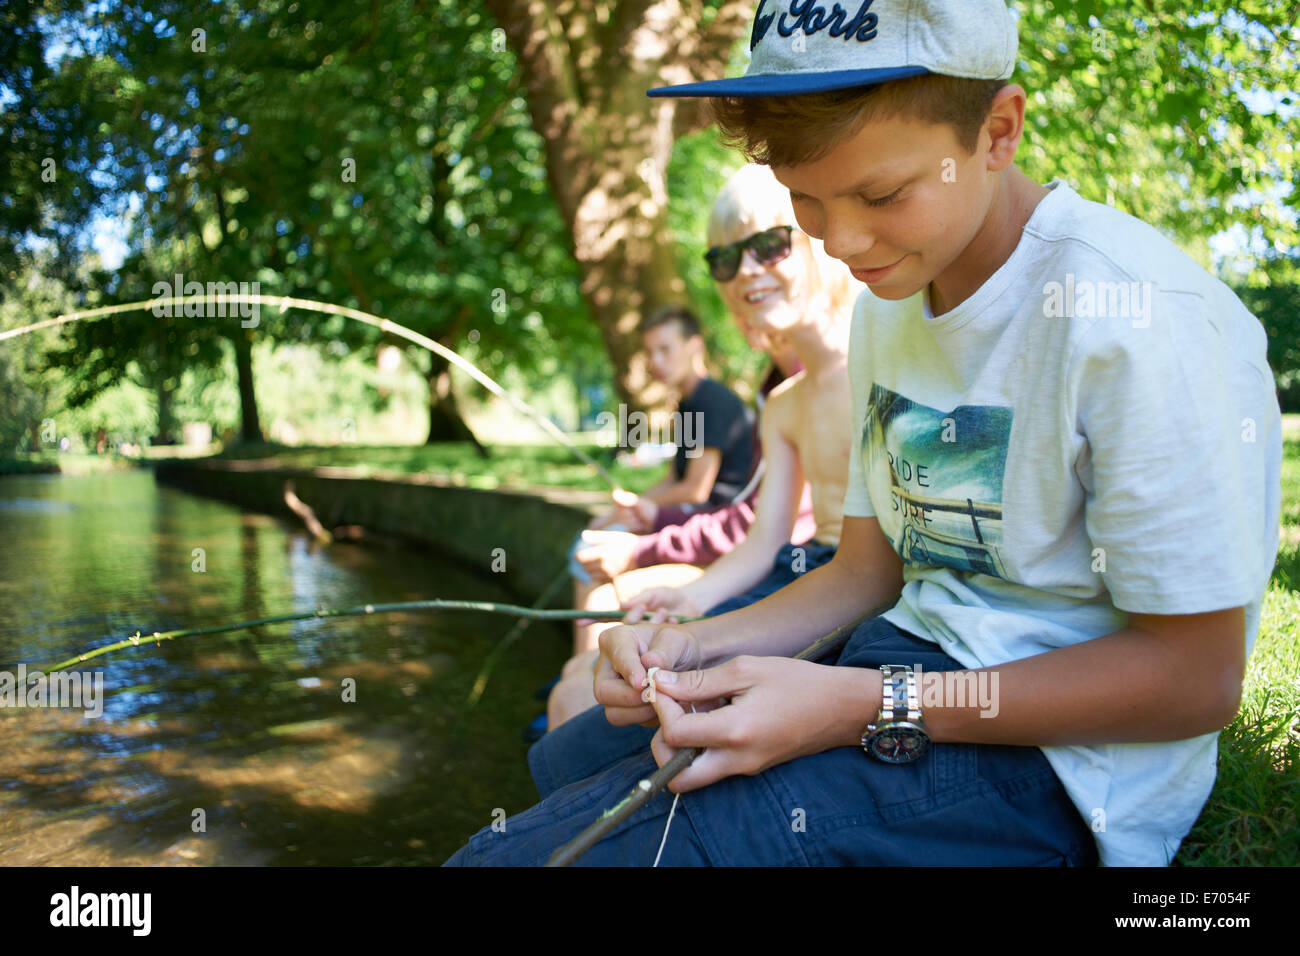 Boys holding sticks, fishing - Stock Image